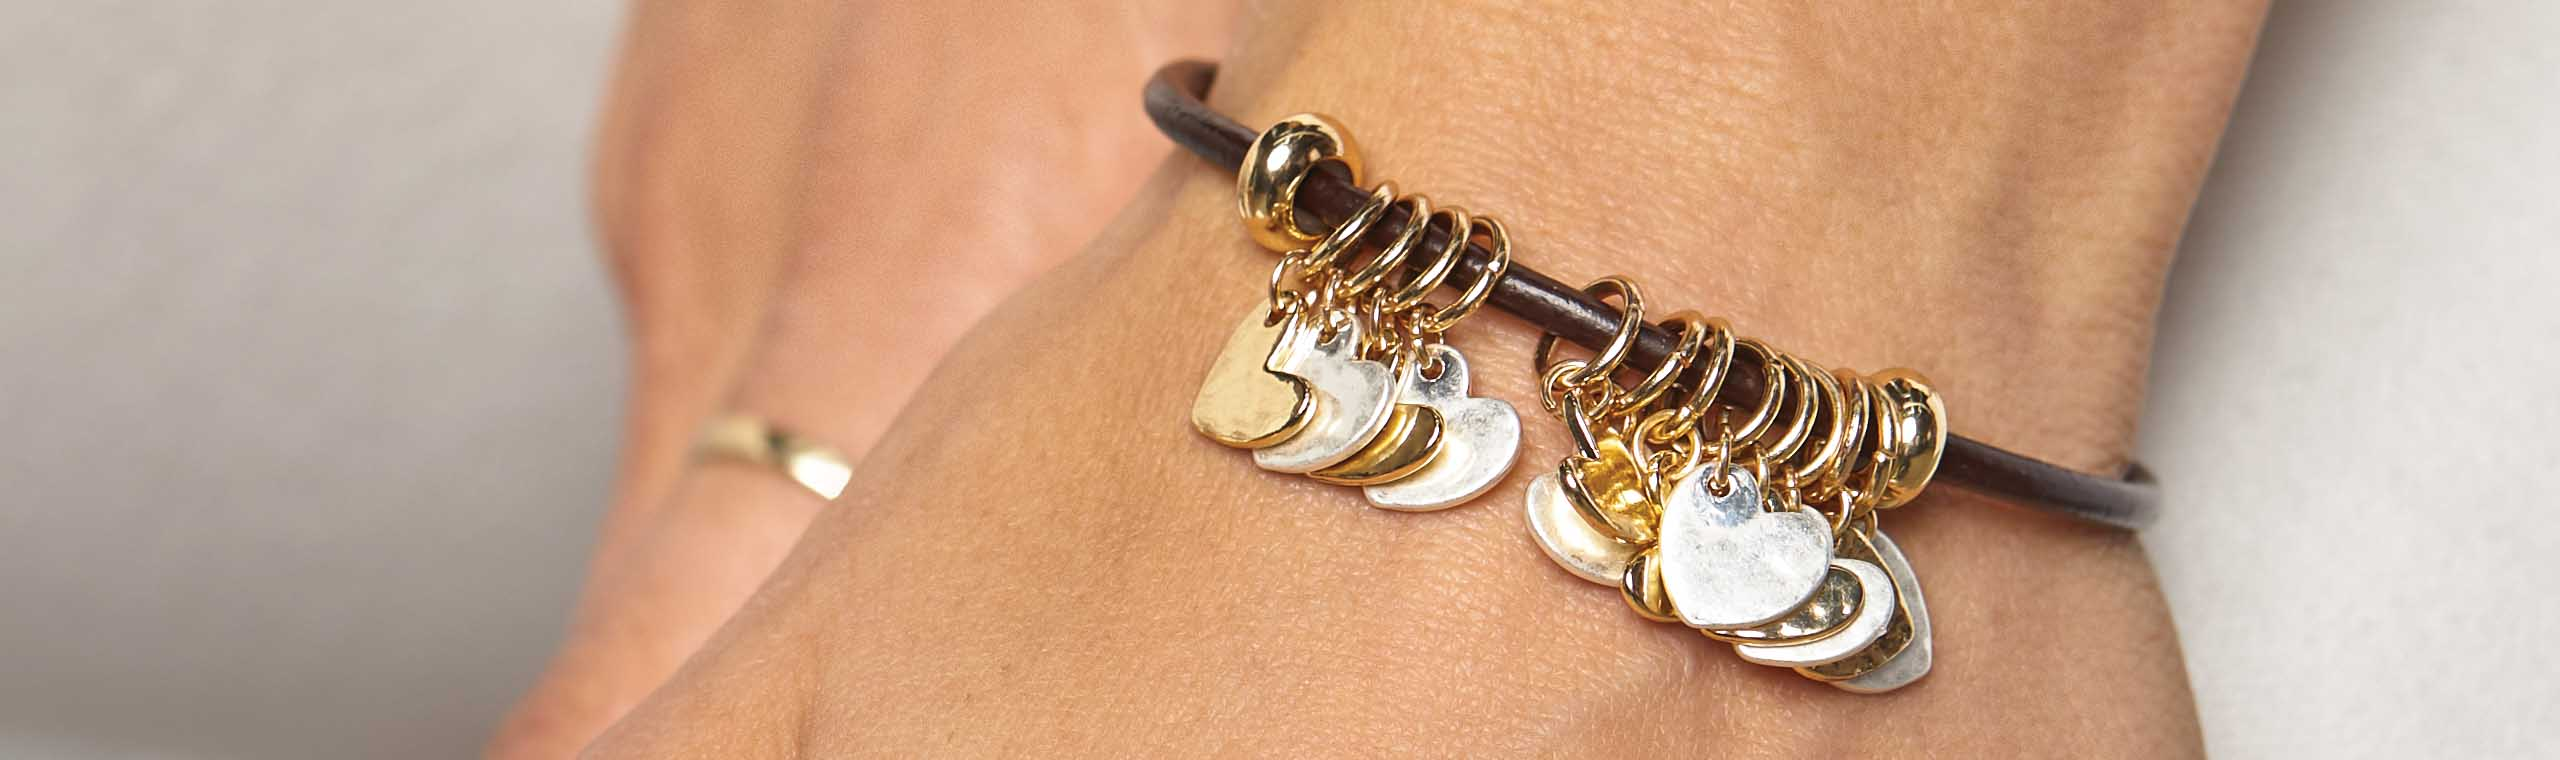 Woman wearing gold bracelet with gold and silver heart charms